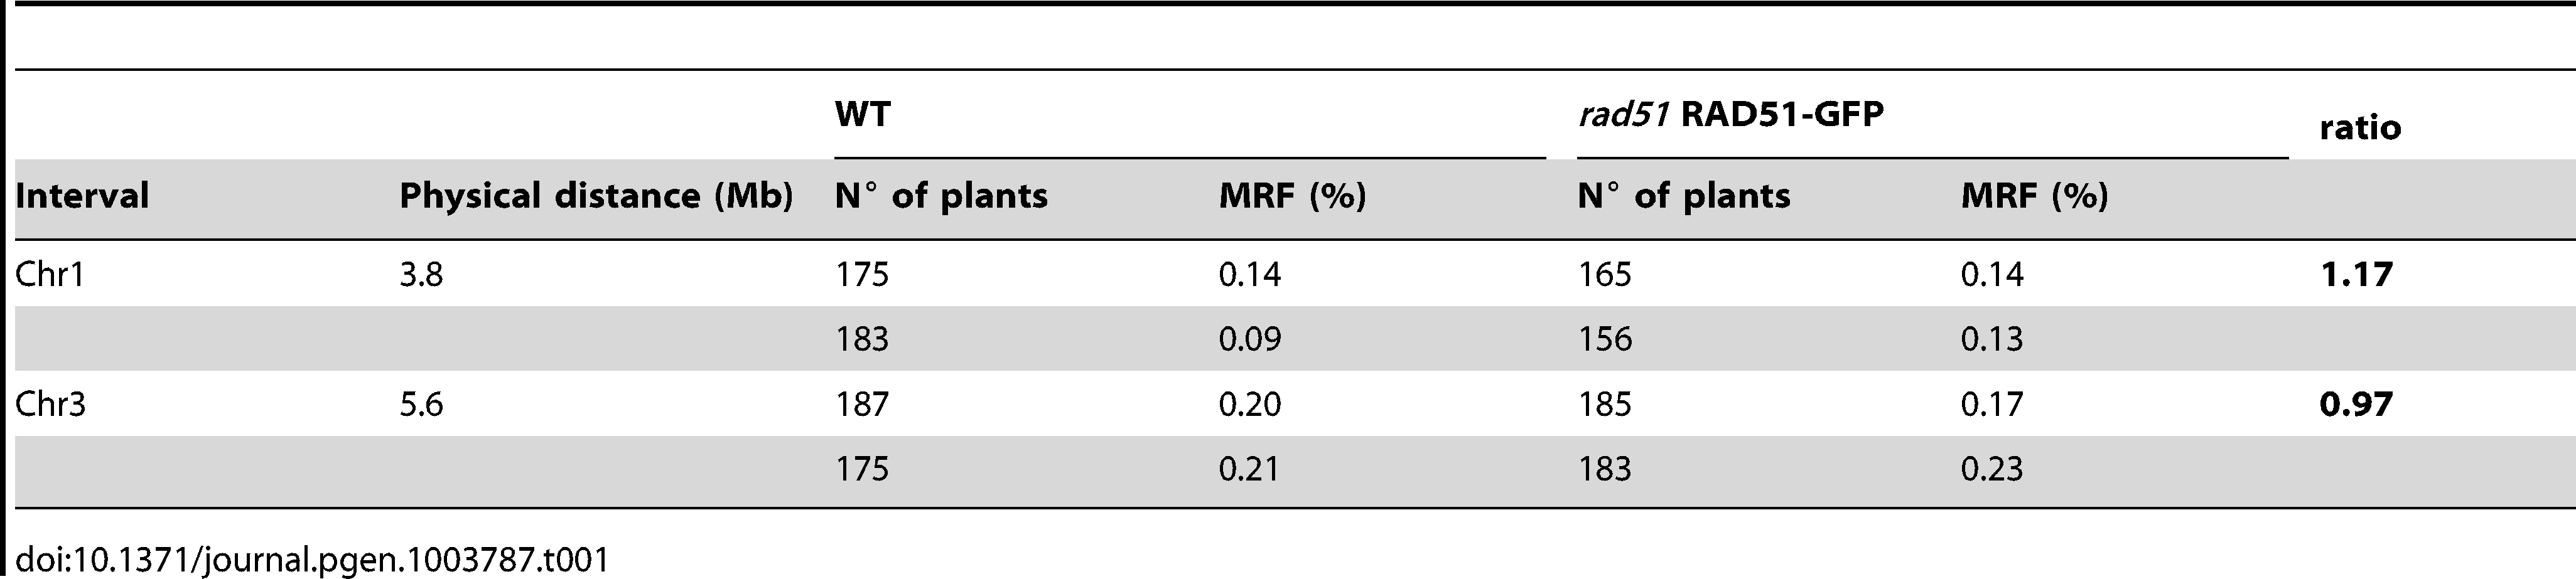 Meiotic recombination frequency (MRF) in WT and <i>rad51</i> RAD51-GFP mutant calculated from analyses of INDEL markers in F2 hybrids.